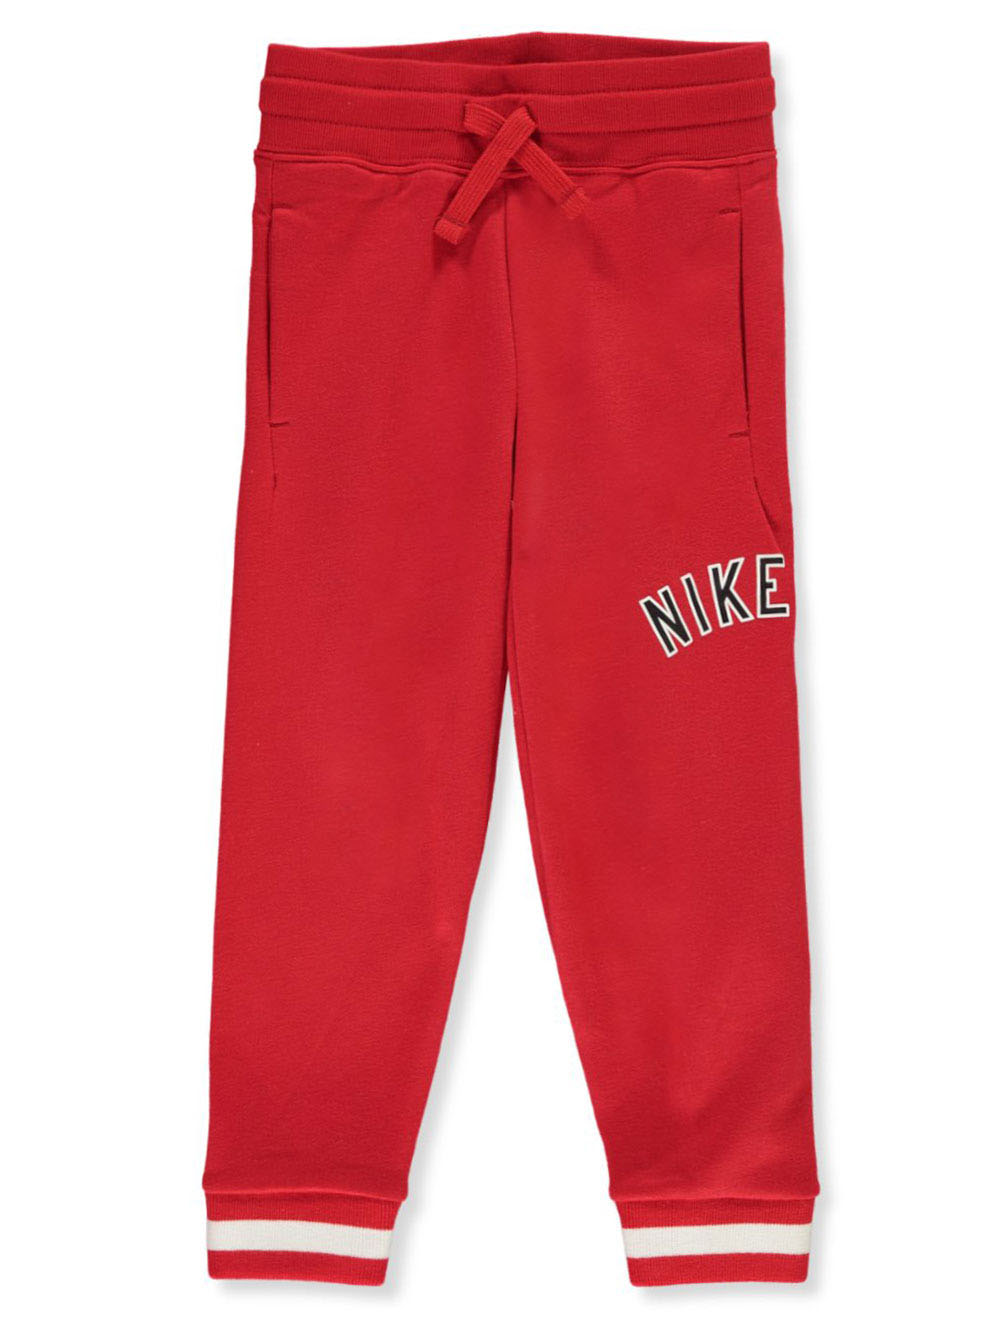 Boys University Red Sweatpants